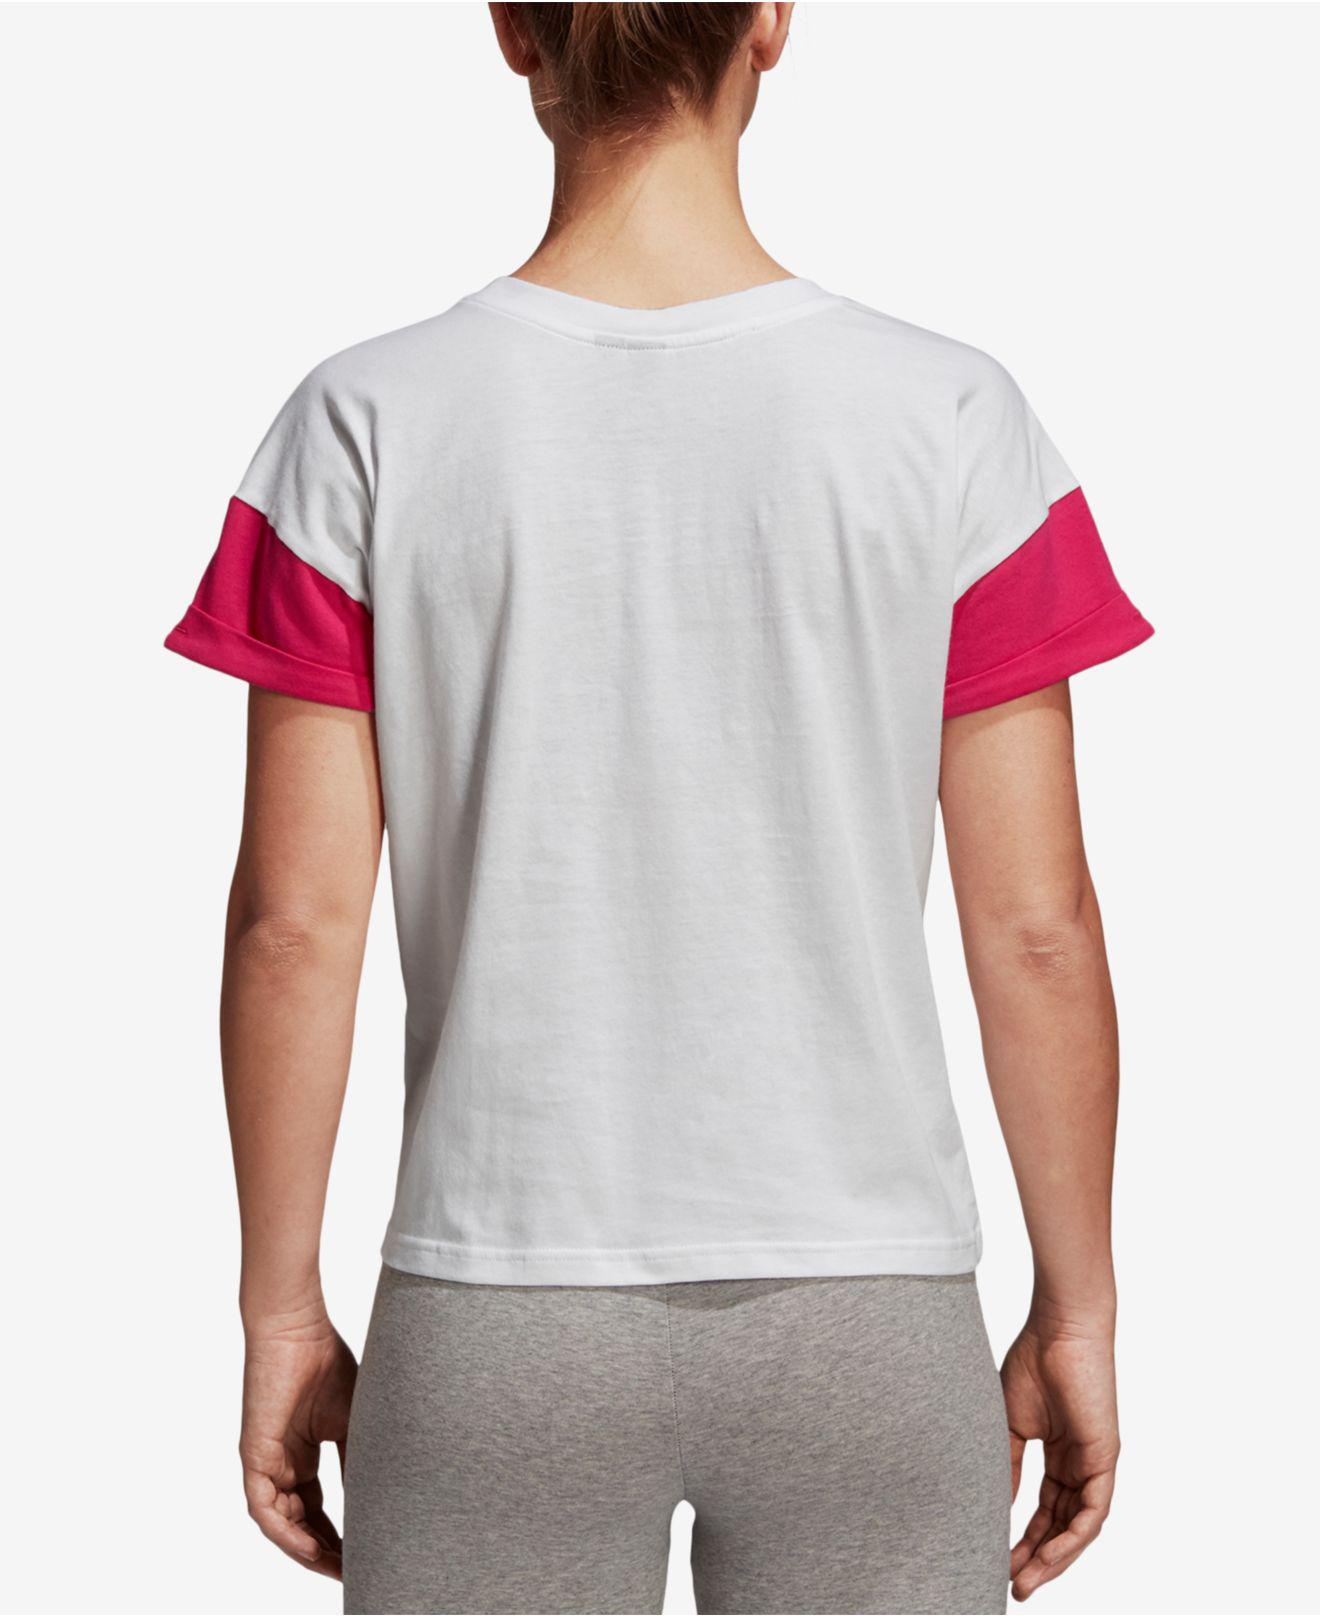 d8c43abd Lyst - adidas Cotton Colorblocked Logo Cropped T-shirt in White